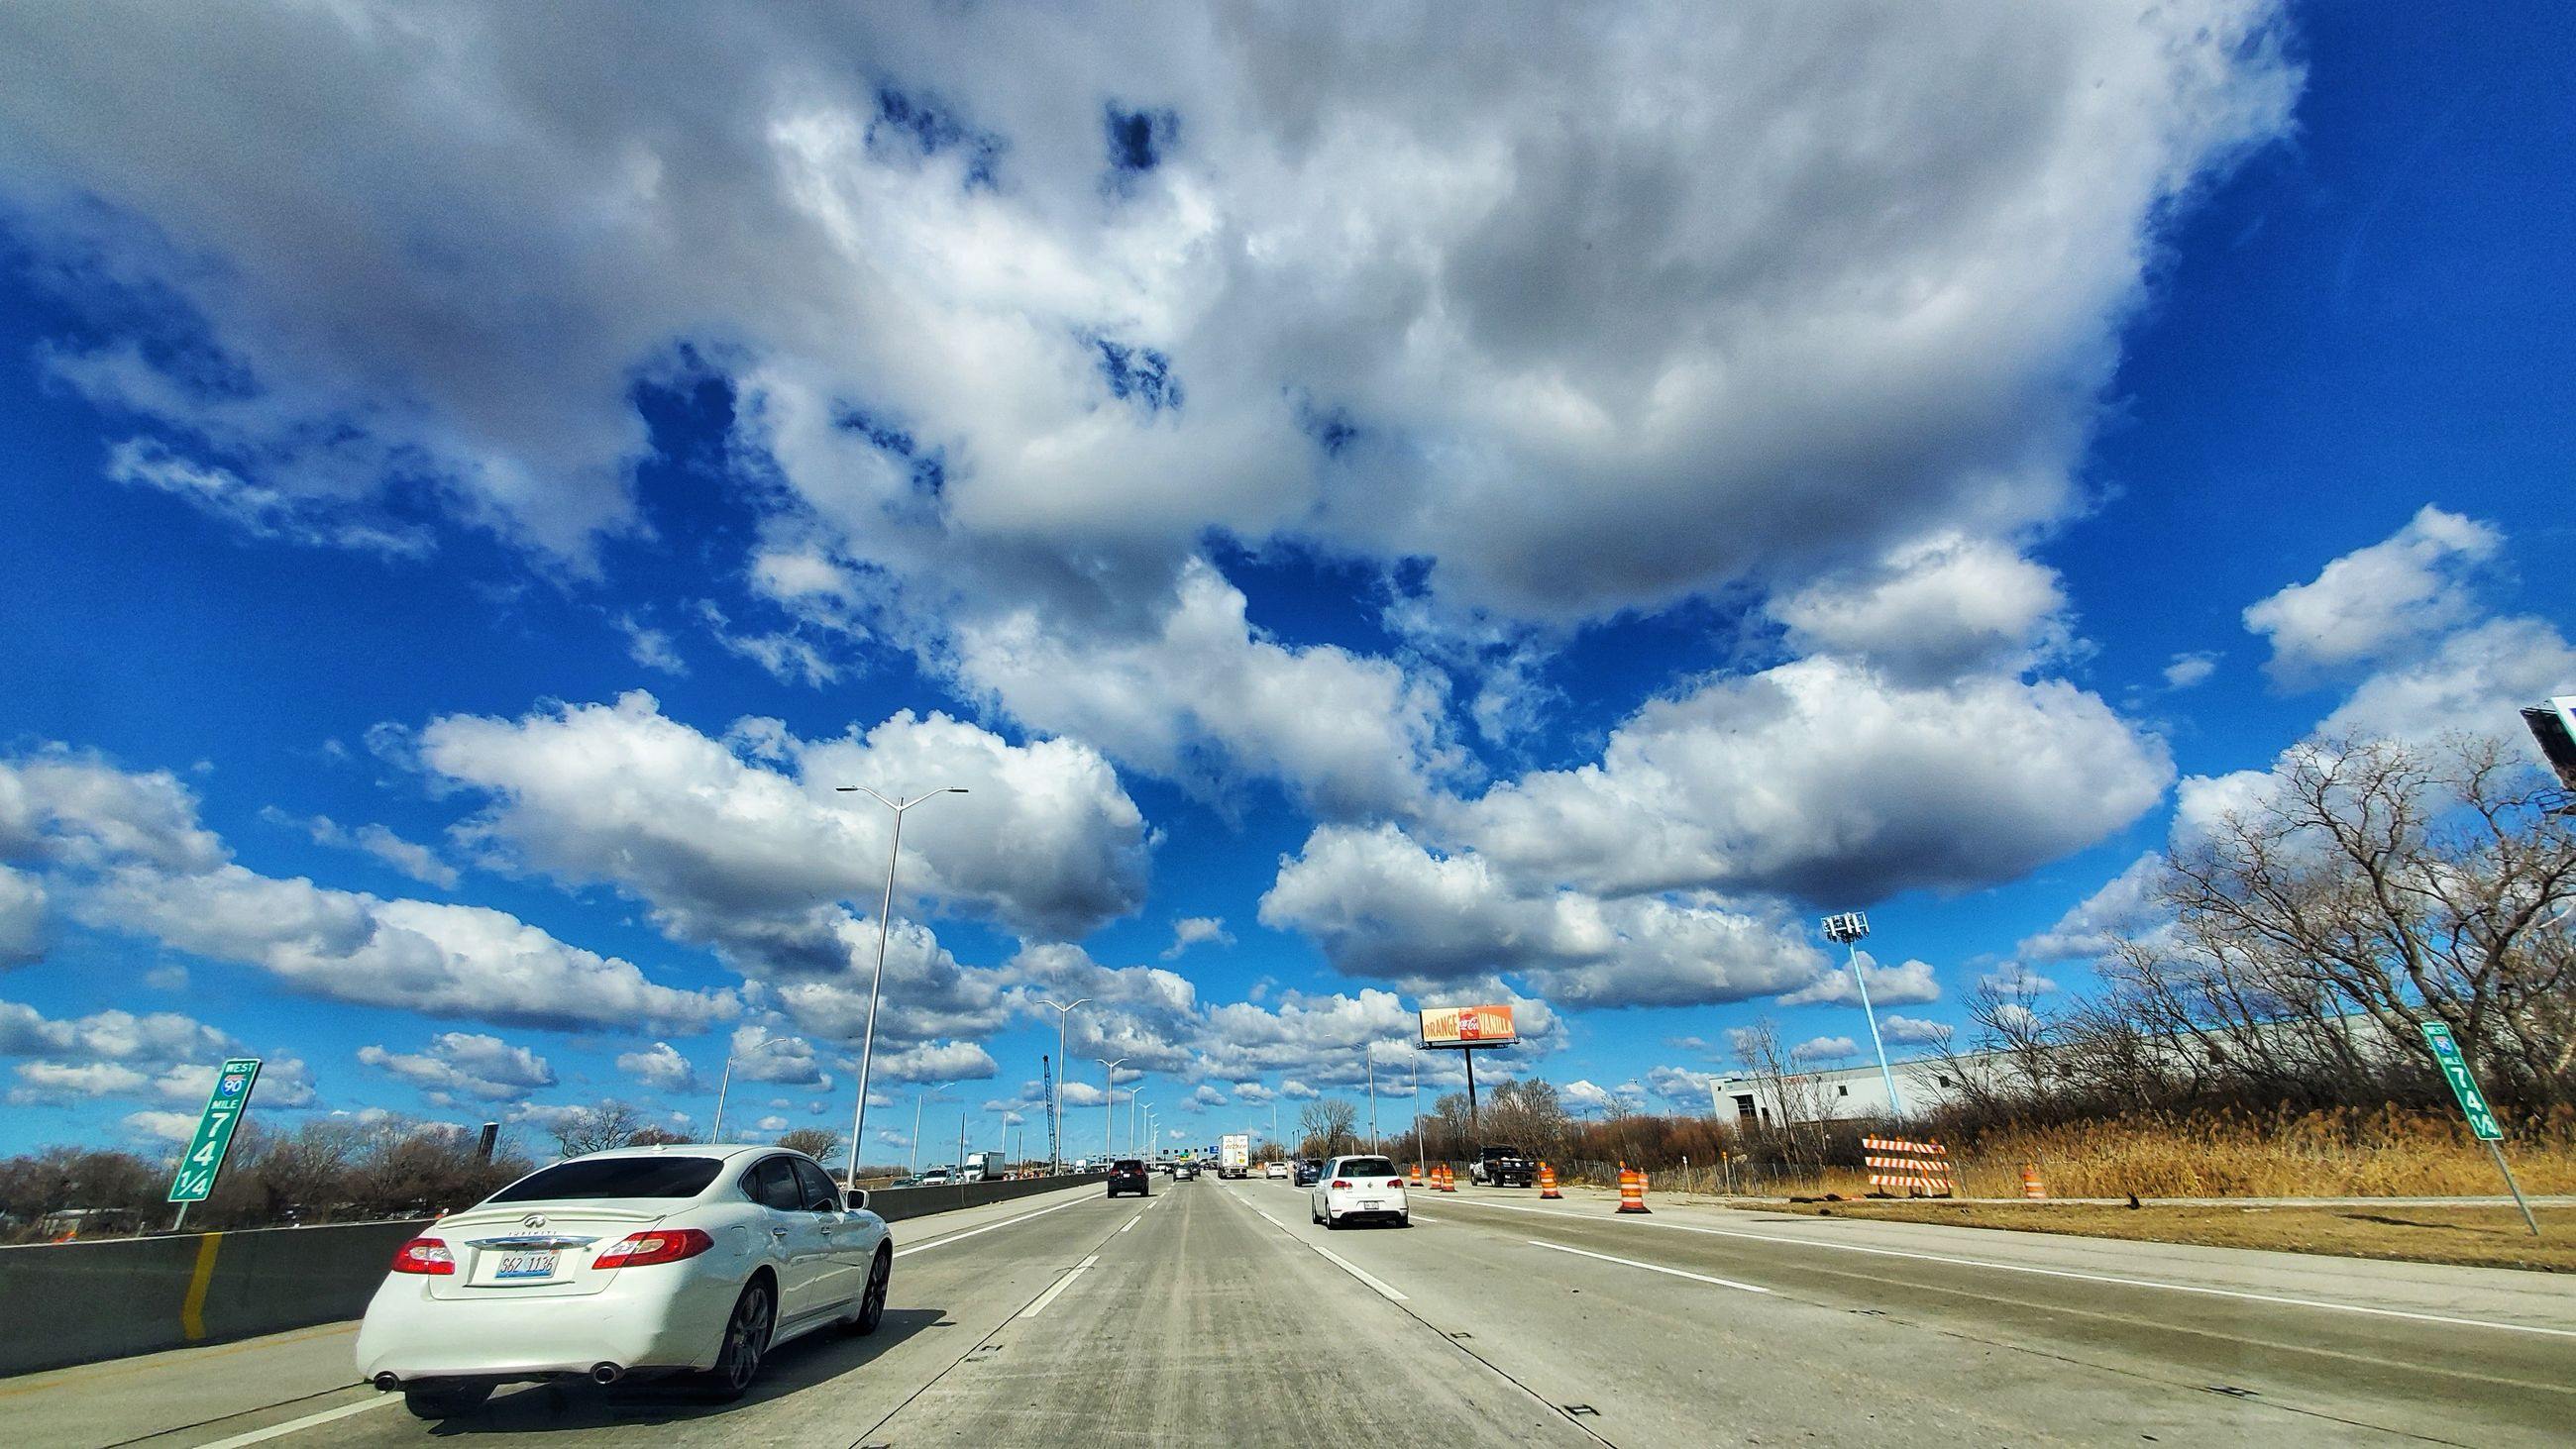 cloud - sky, sky, transportation, road, mode of transportation, car, motor vehicle, land vehicle, the way forward, day, nature, blue, direction, no people, on the move, city, street, motion, travel, outdoors, road trip